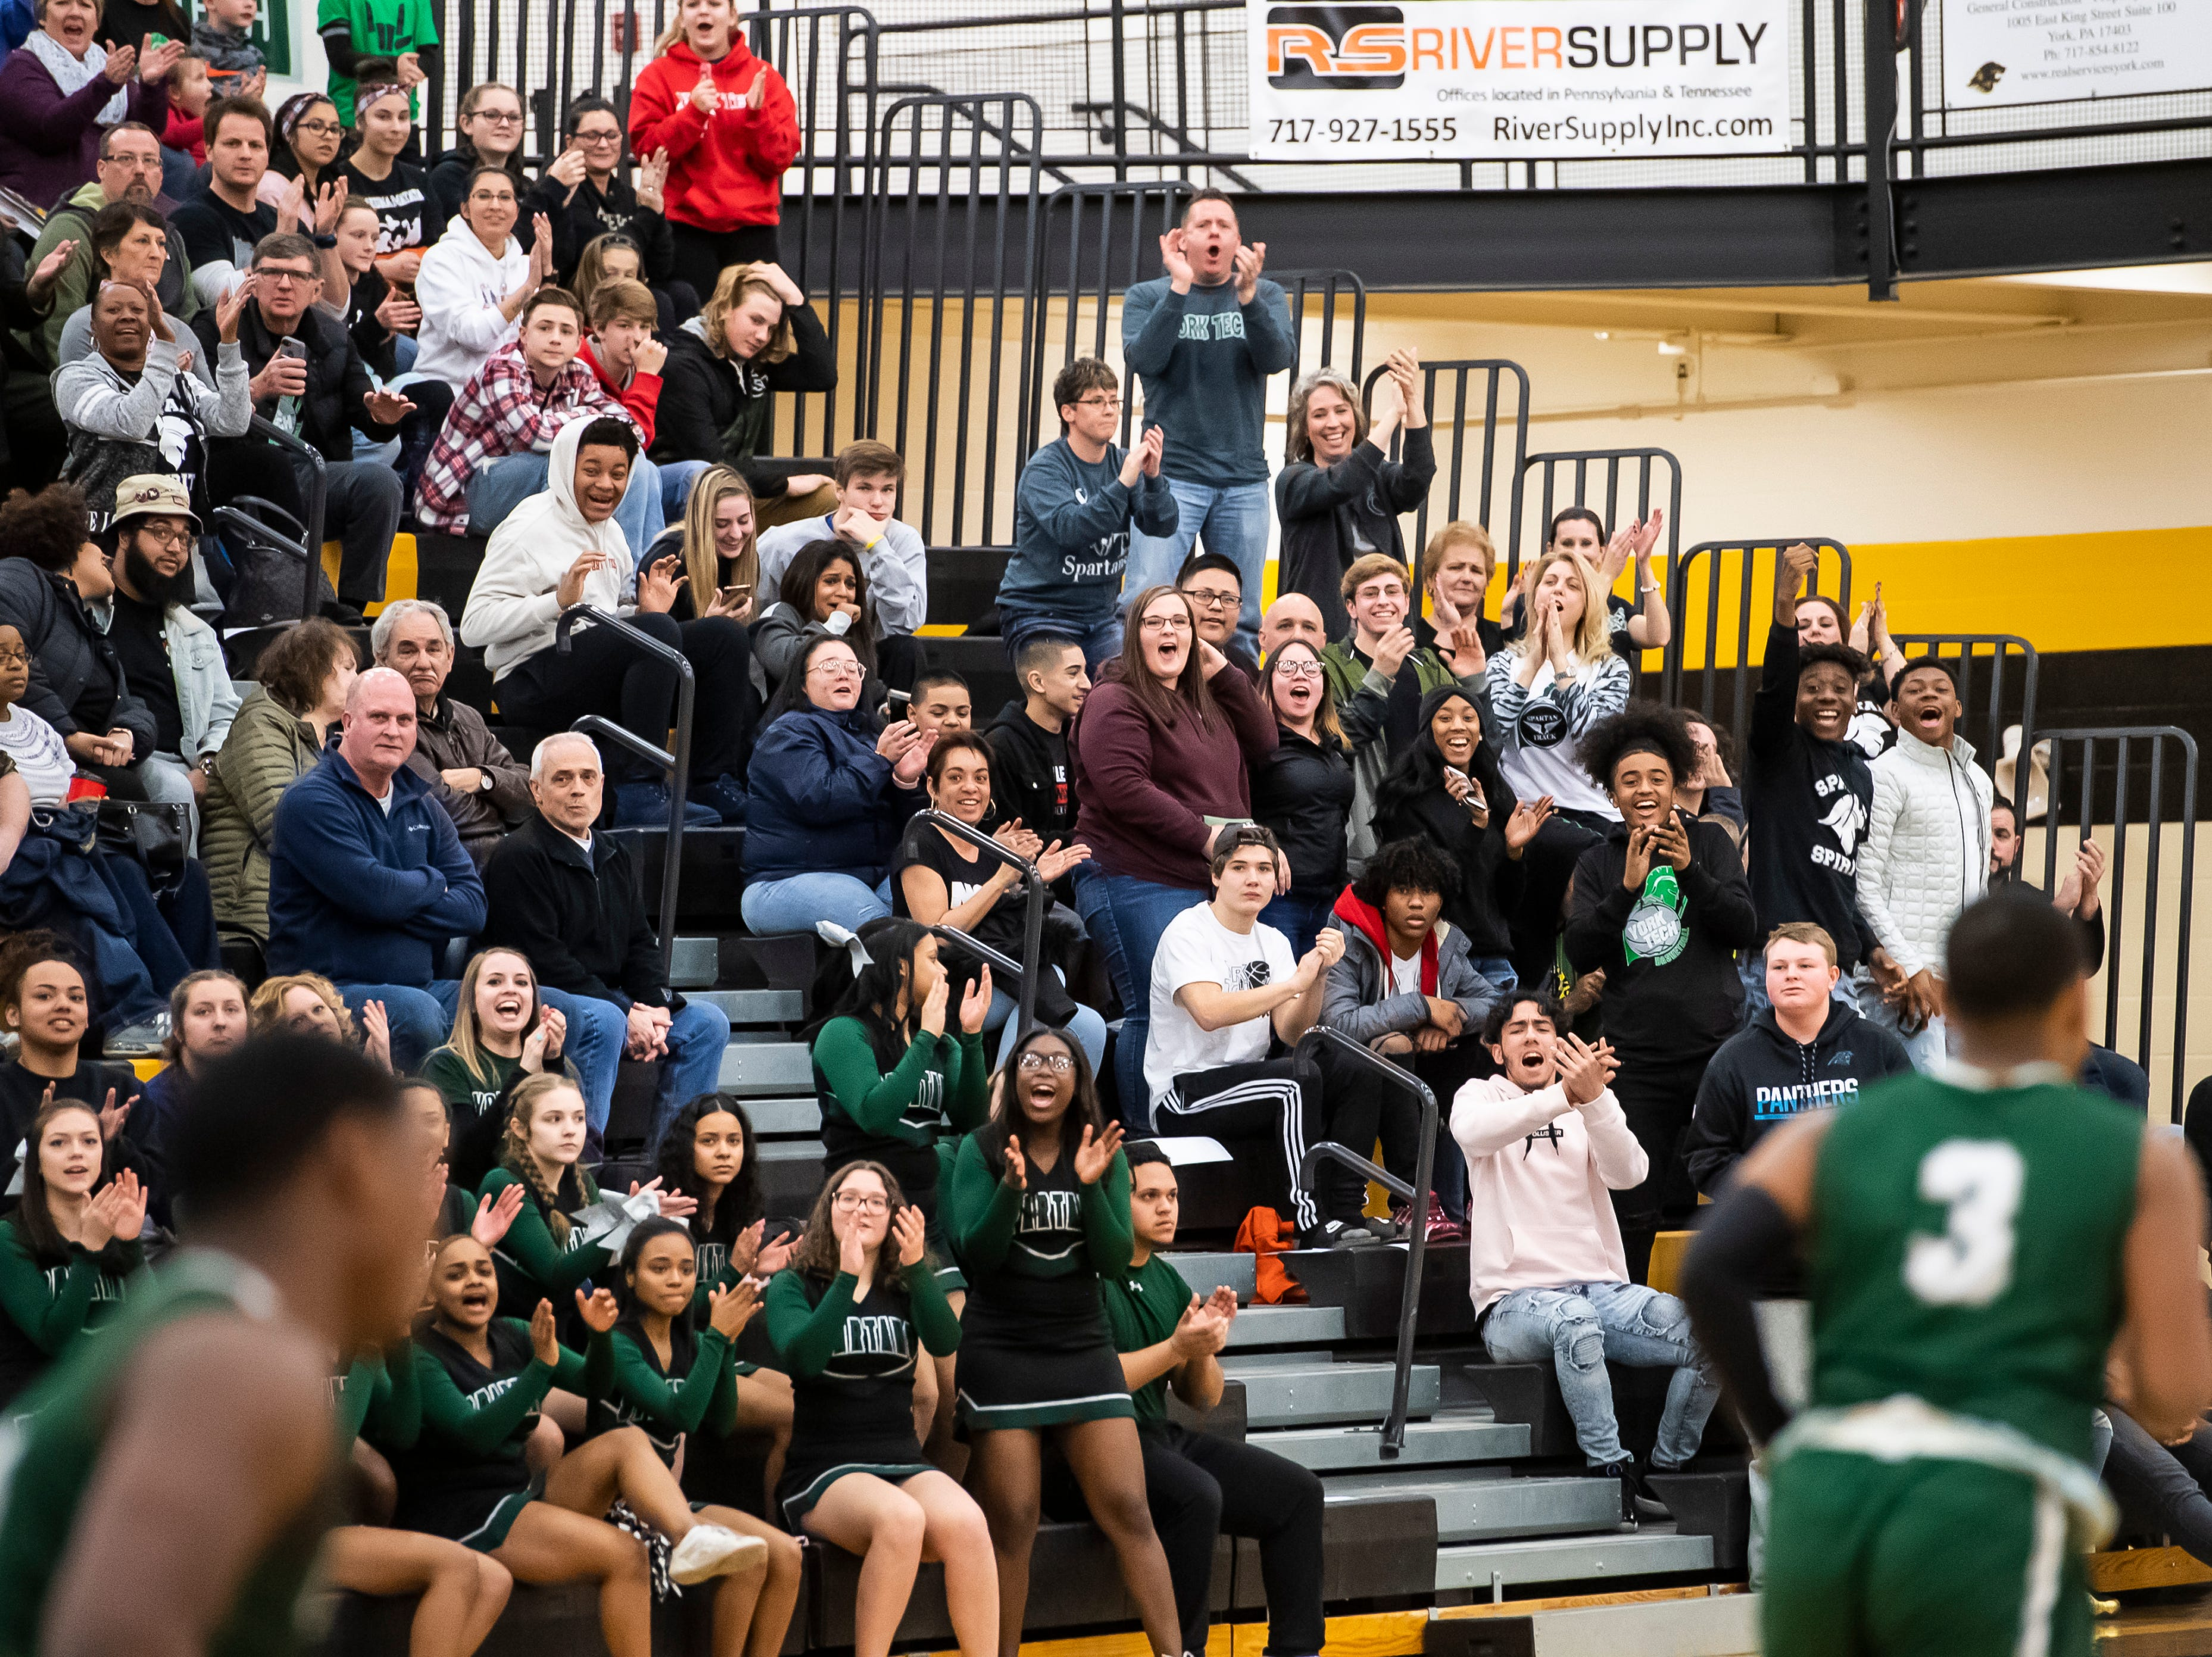 York County Tech fans react after the Spartans score during play against  Central York in a YAIAA quarterfinal game at Red Lion High School Saturday, February 9, 2019. The Panthers won 74-43.